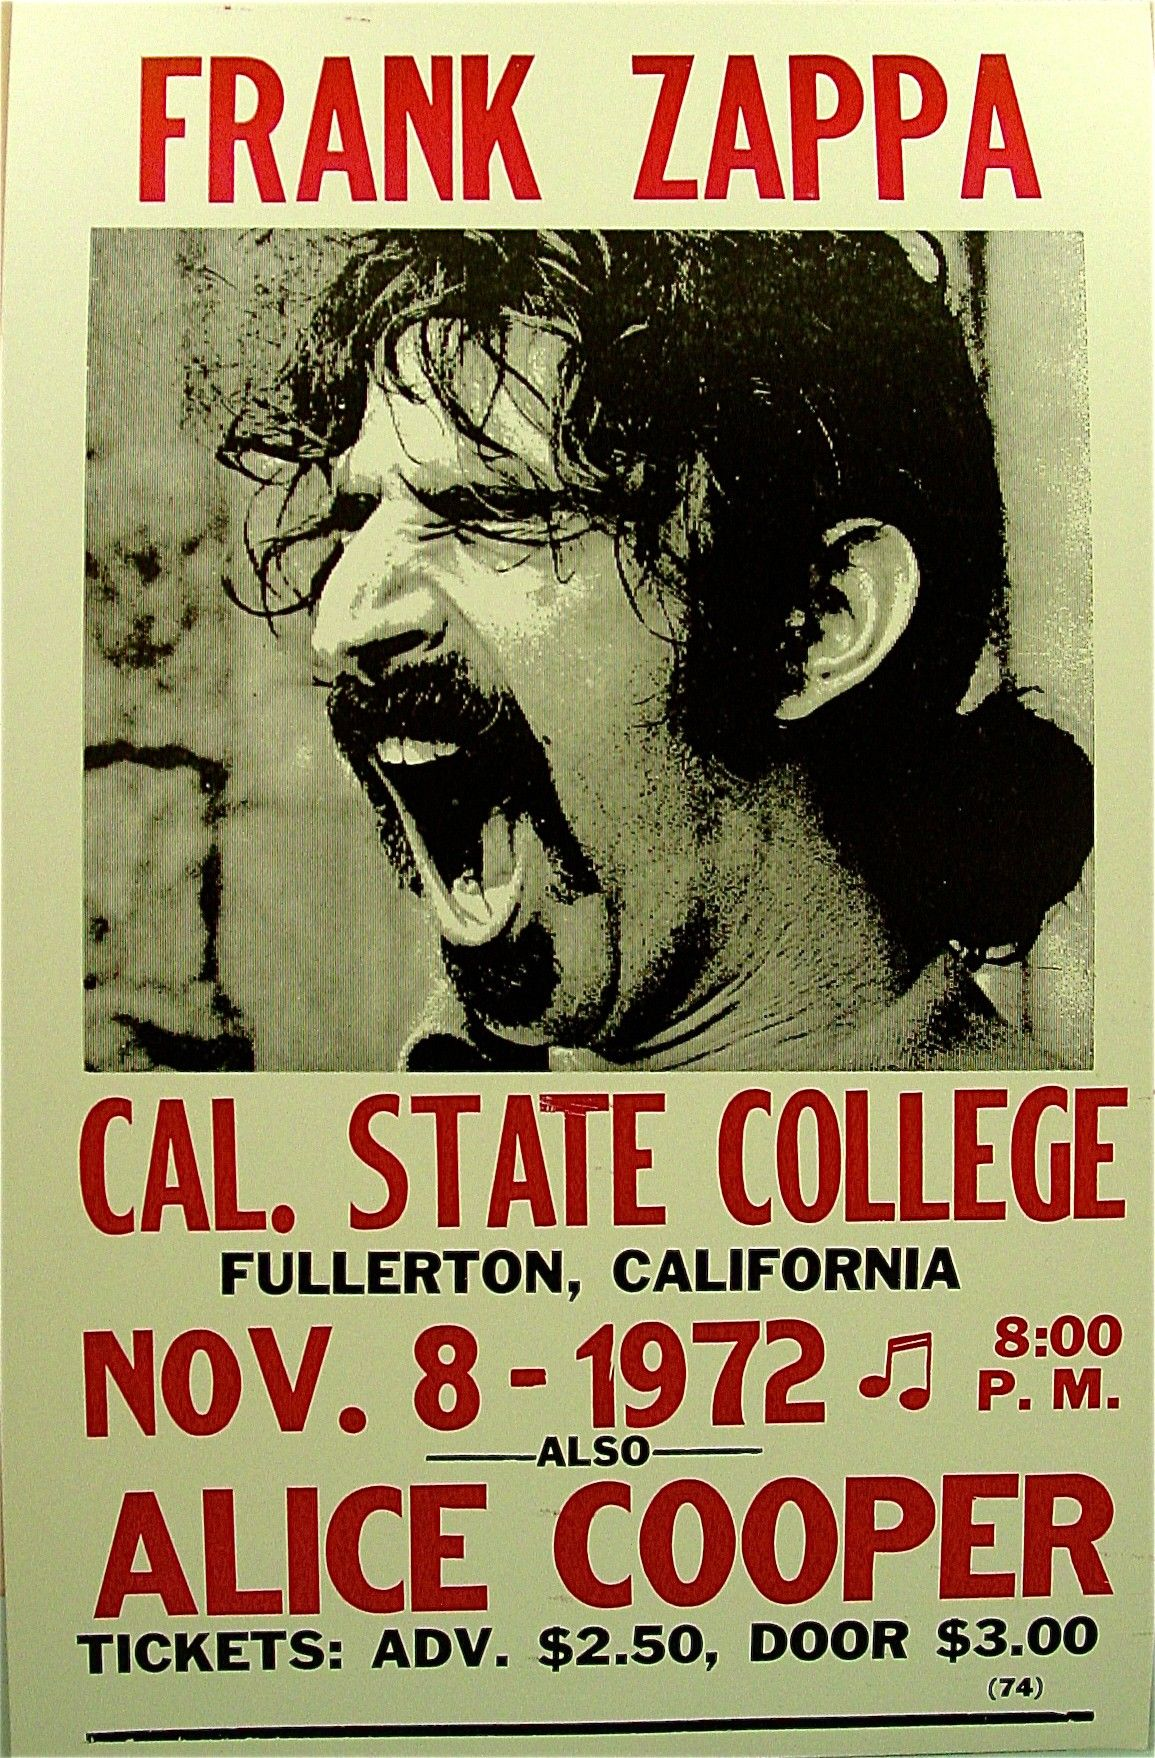 Frank Zappa Happy Birthday for frank zappa and alice cooper classic rock psychedelic concert